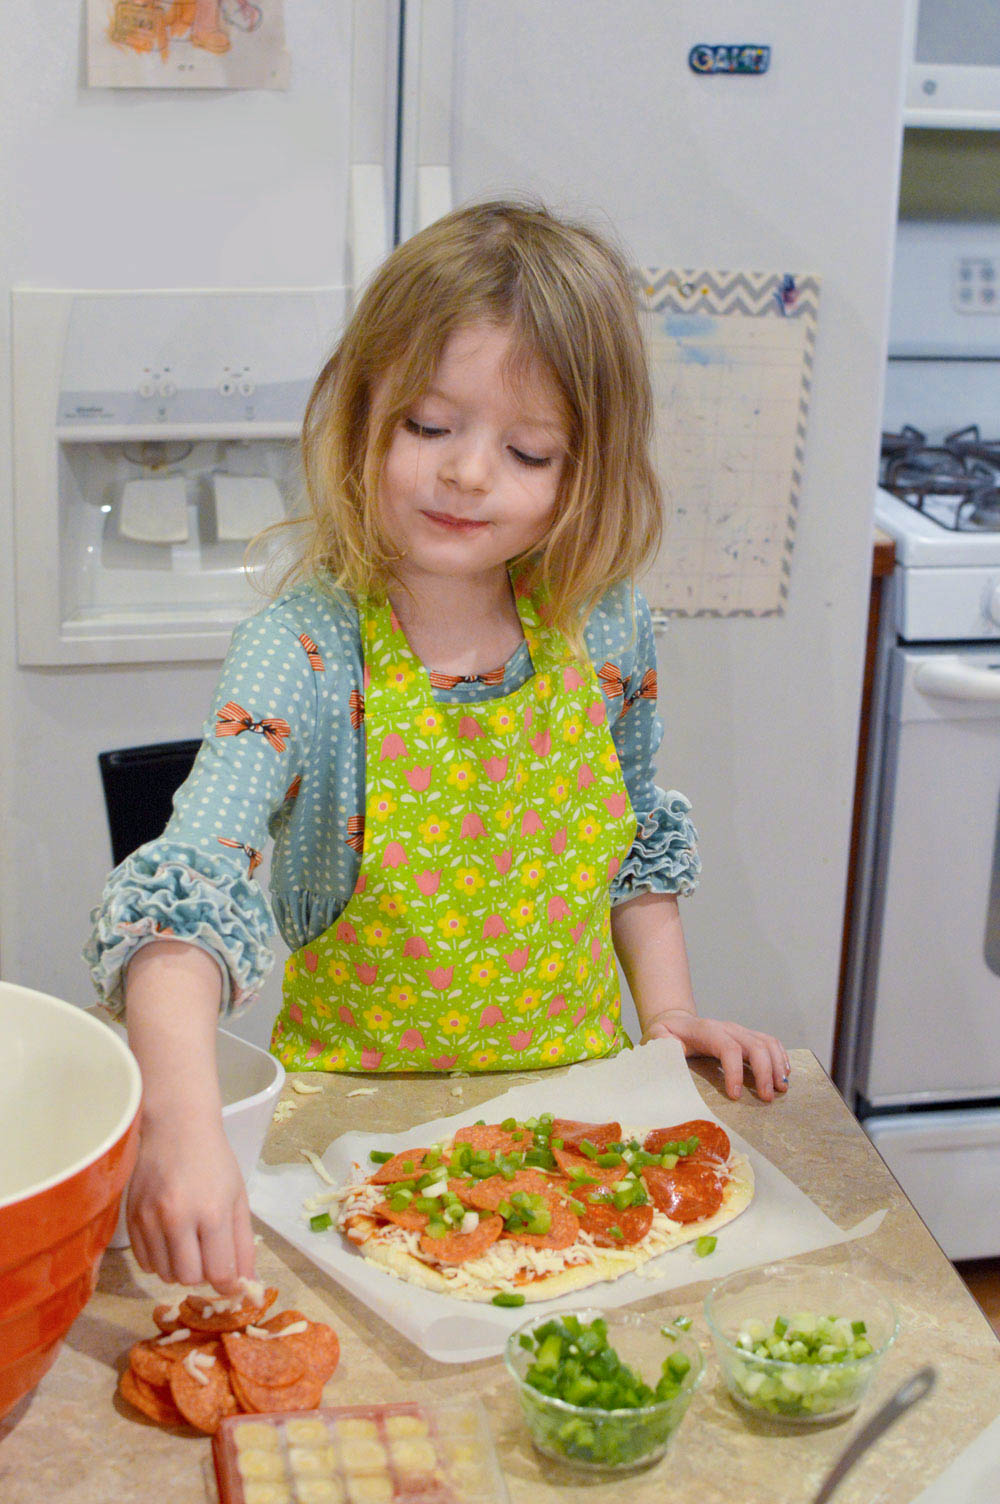 Make homemade pizza with your kids